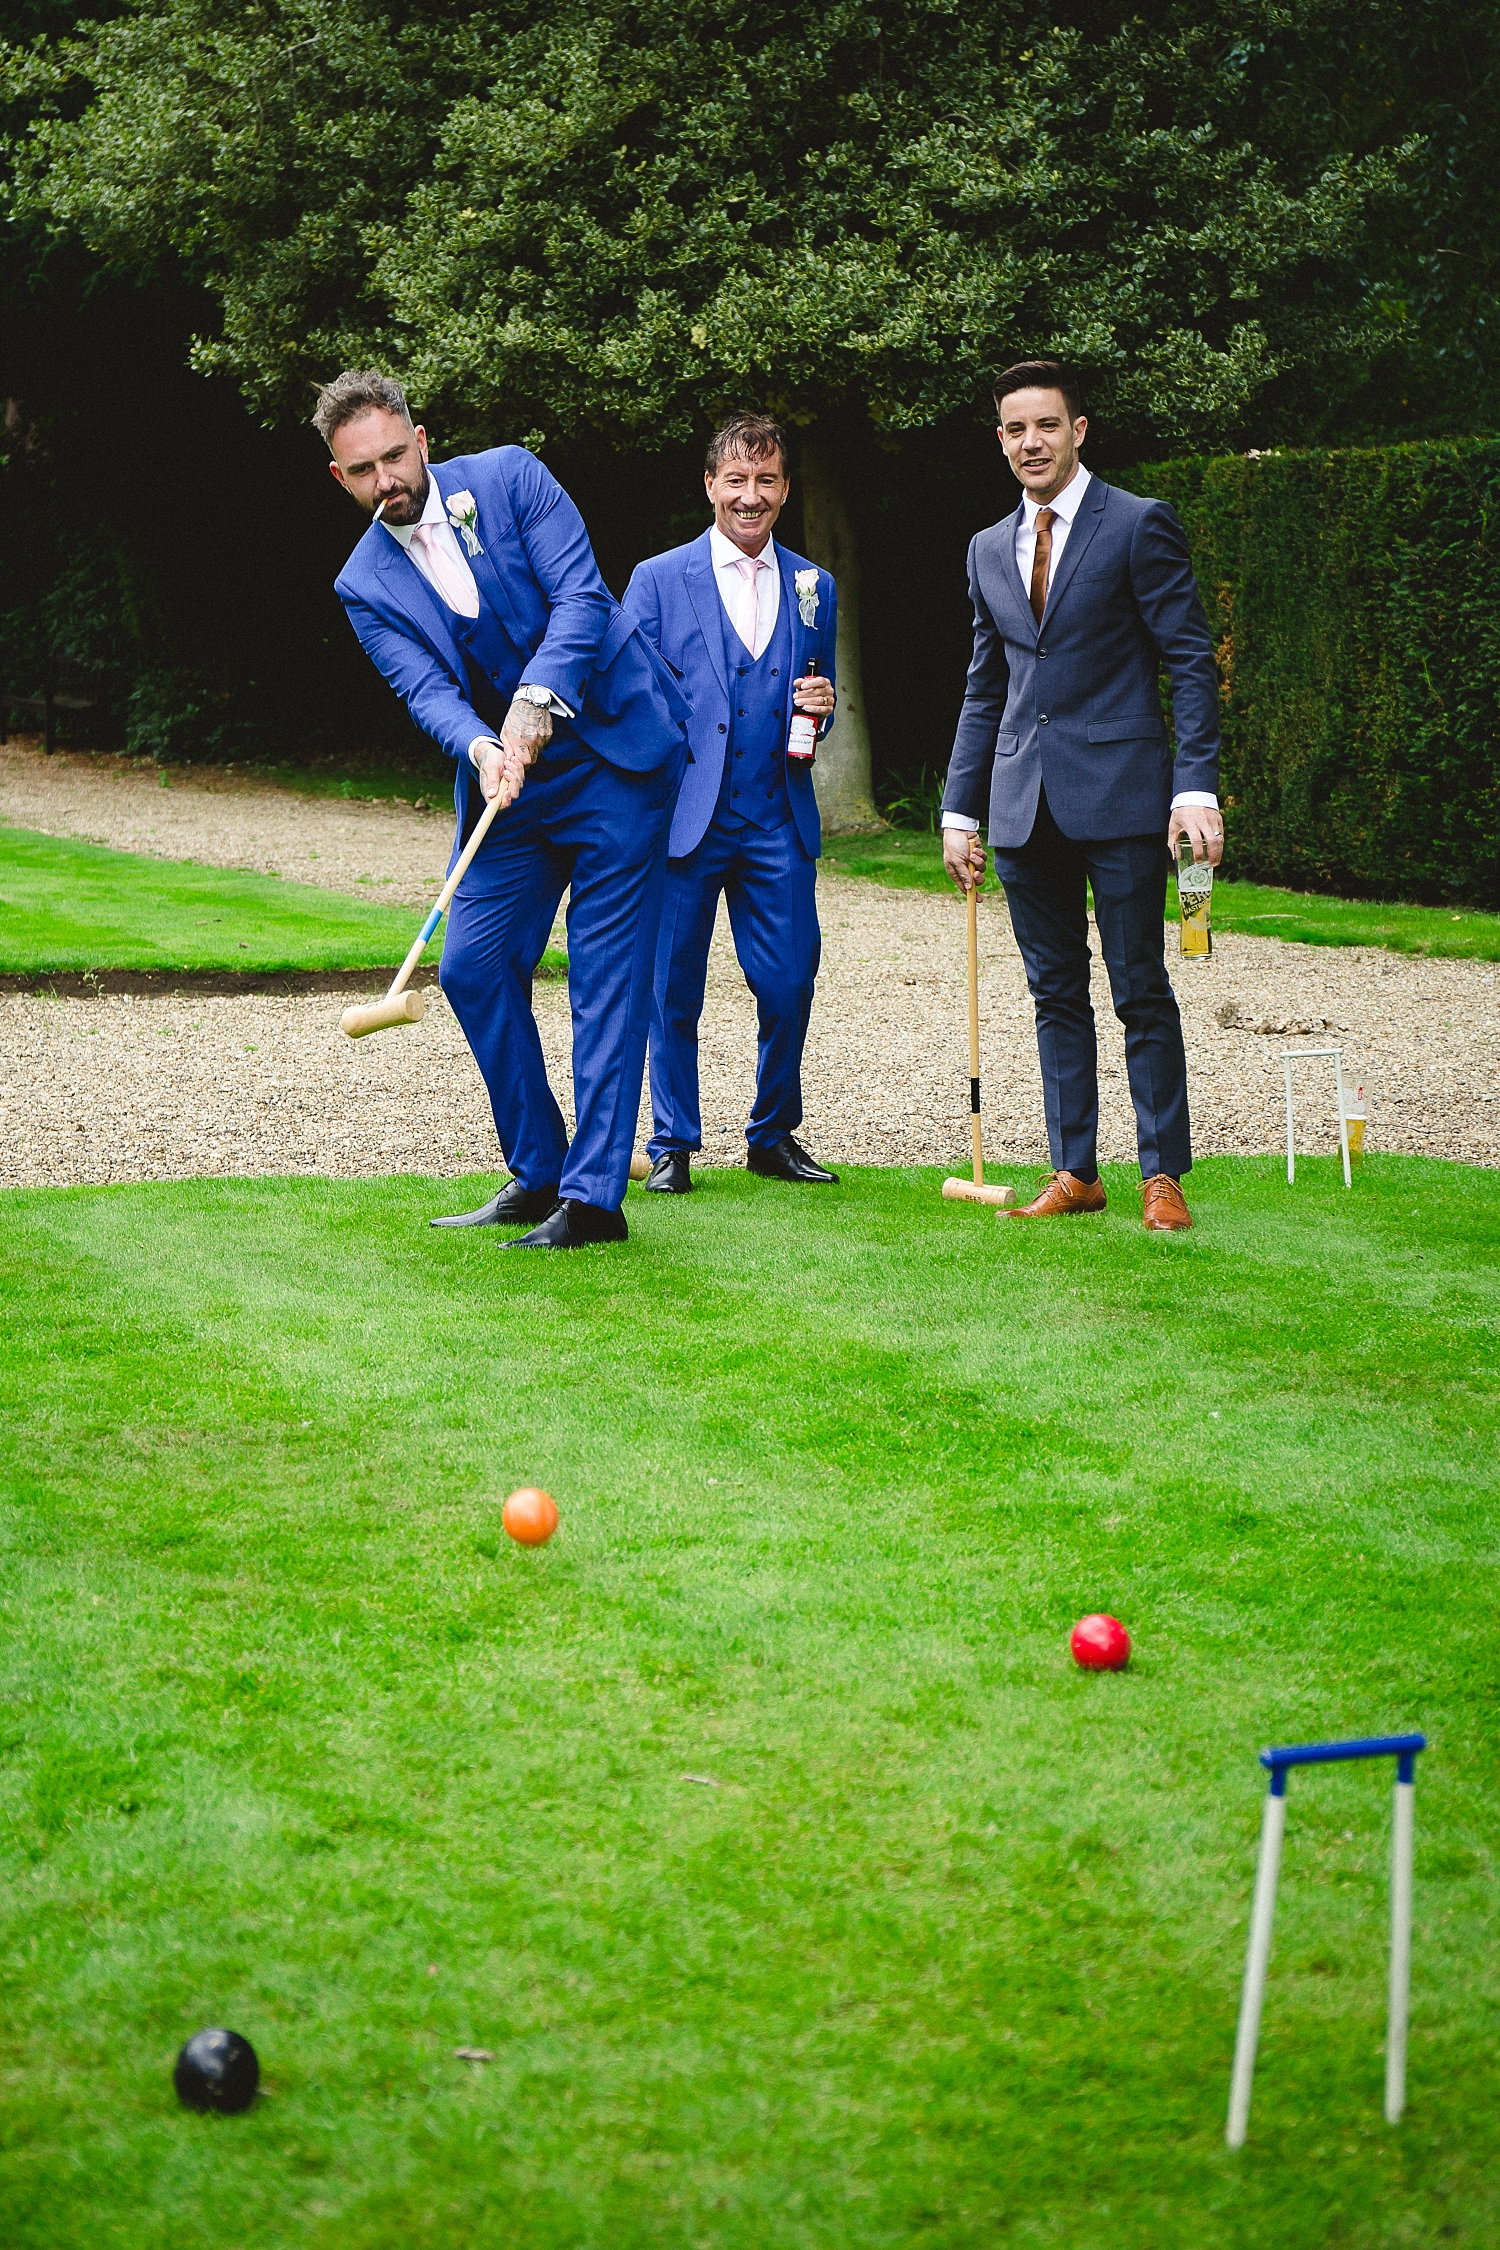 Gosfield Hall Wedding Photography - Groom's Party playing Croquet